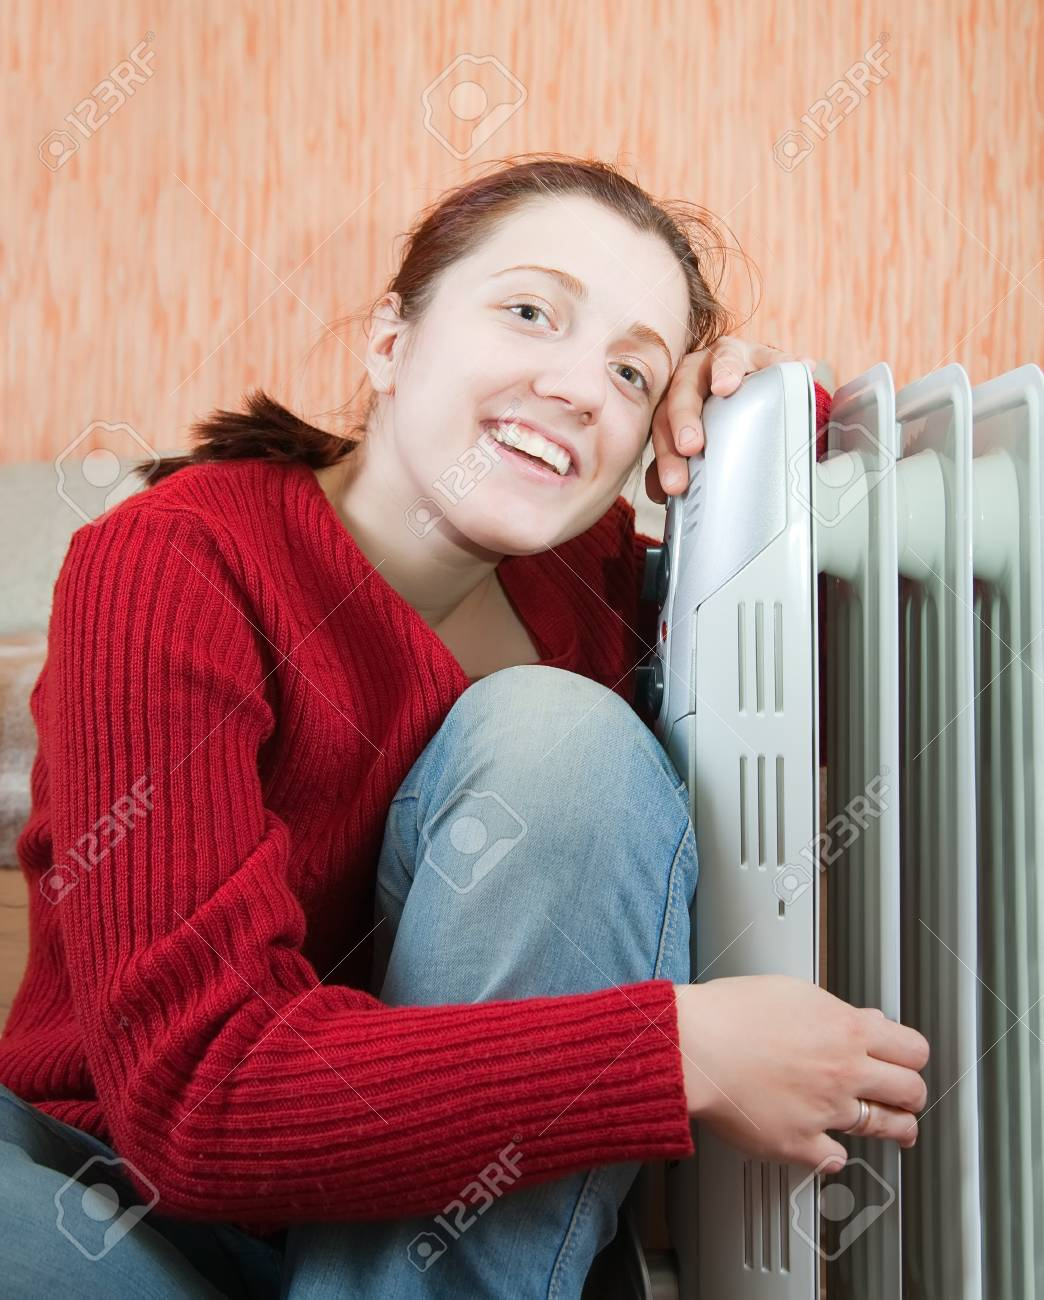 young smiling girl is sitting near oil heater Stock Photo - 7619395